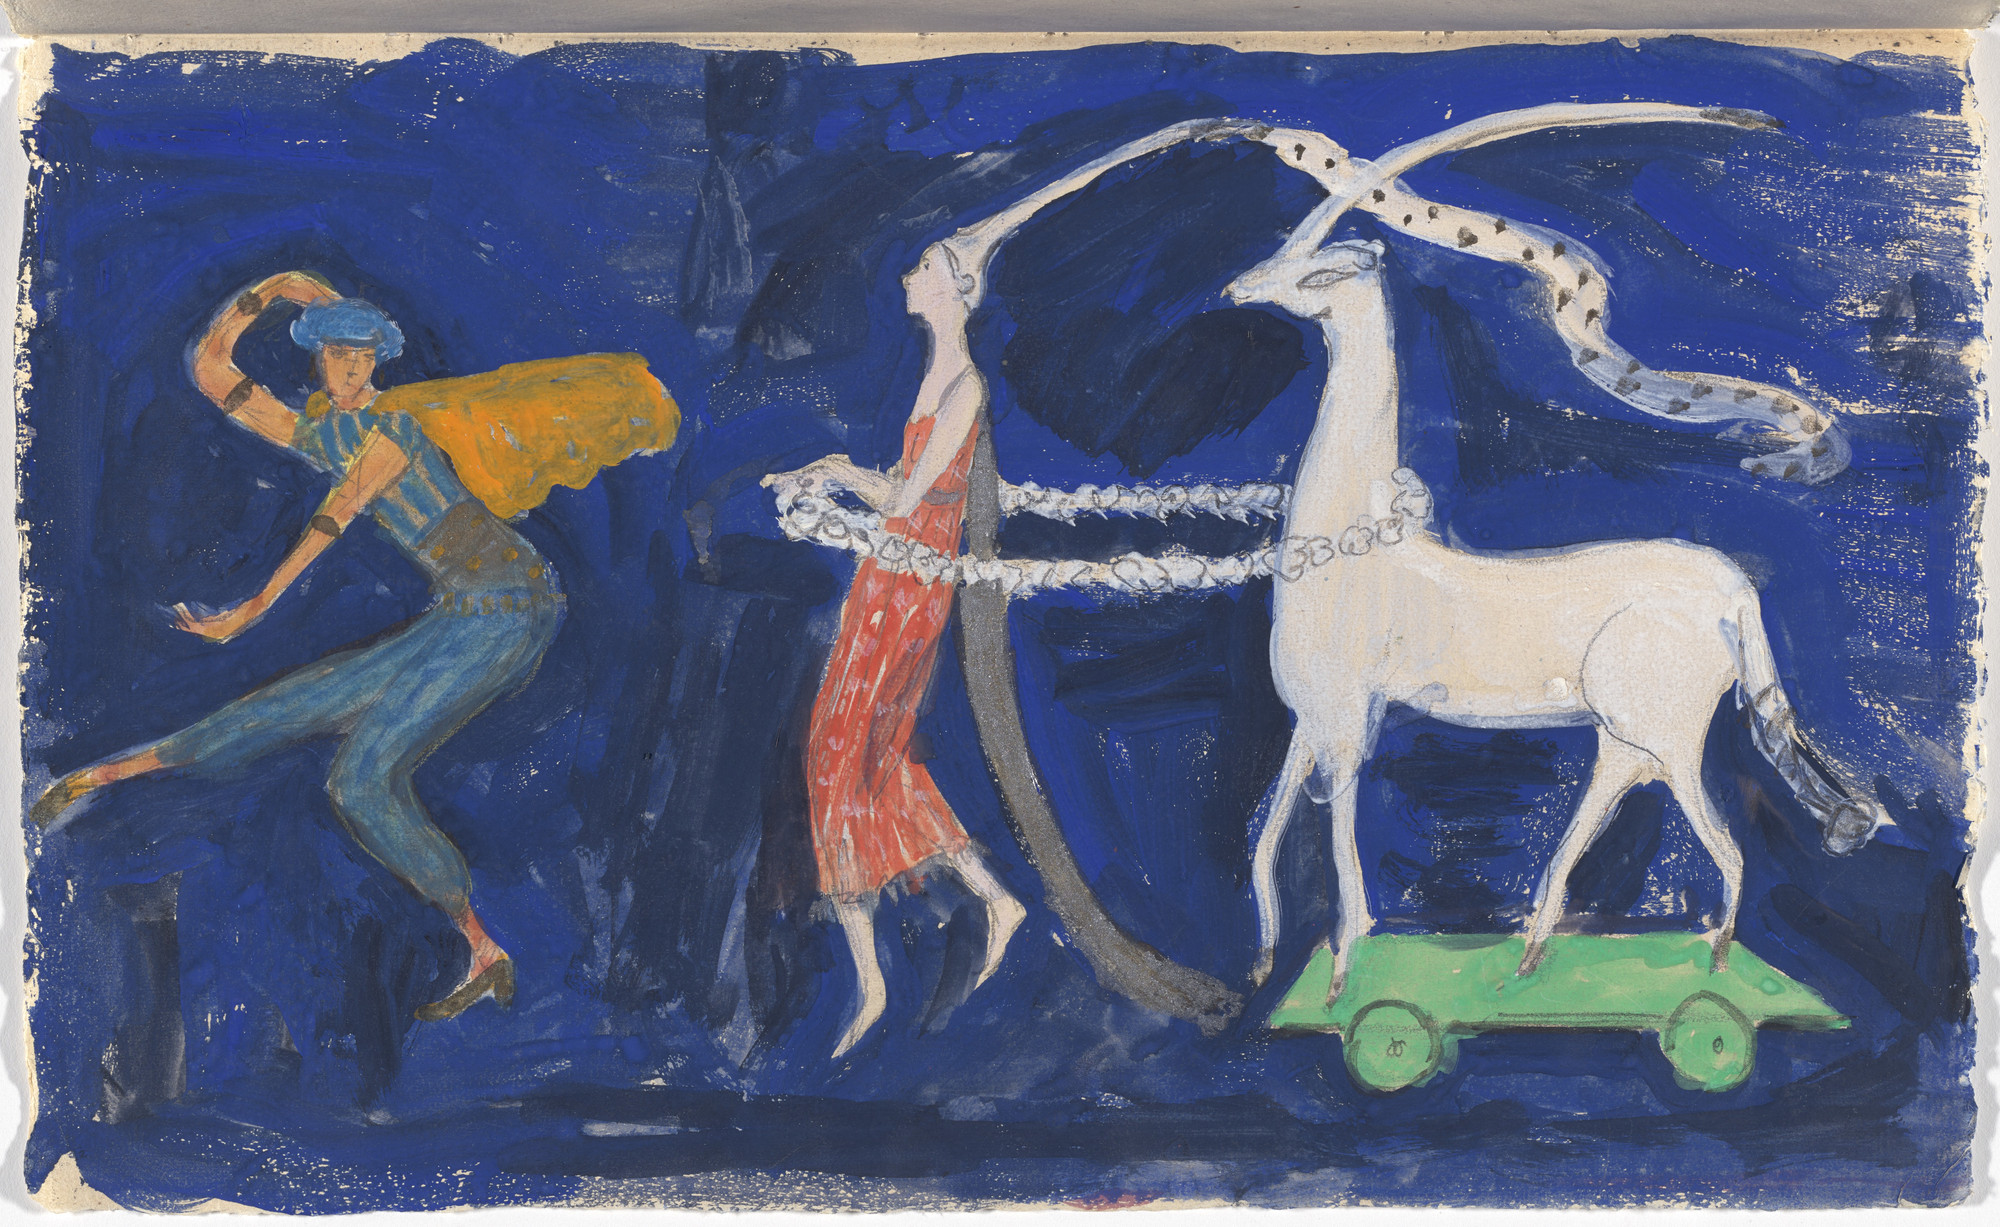 Florine Stettheimer. Costume design (Procession: Zizim of Persia, Agnes de Bourganeuf, and the Unicorn) for artist's ballet Orphée of the Quat-z-arts. c. 1912